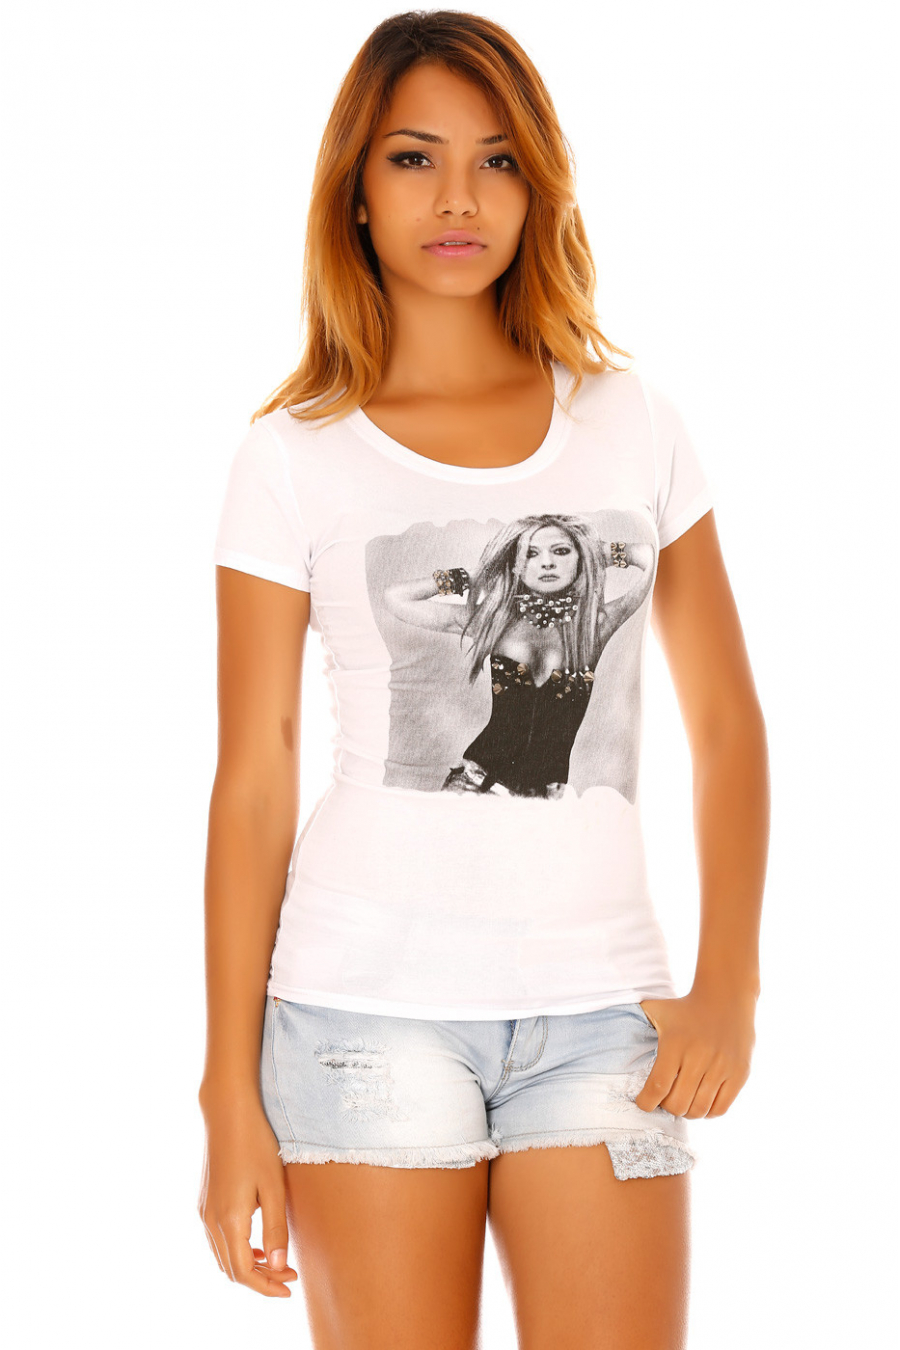 White T-shirt with Avril Lavigne photo print with silver spike ornaments. SW201224